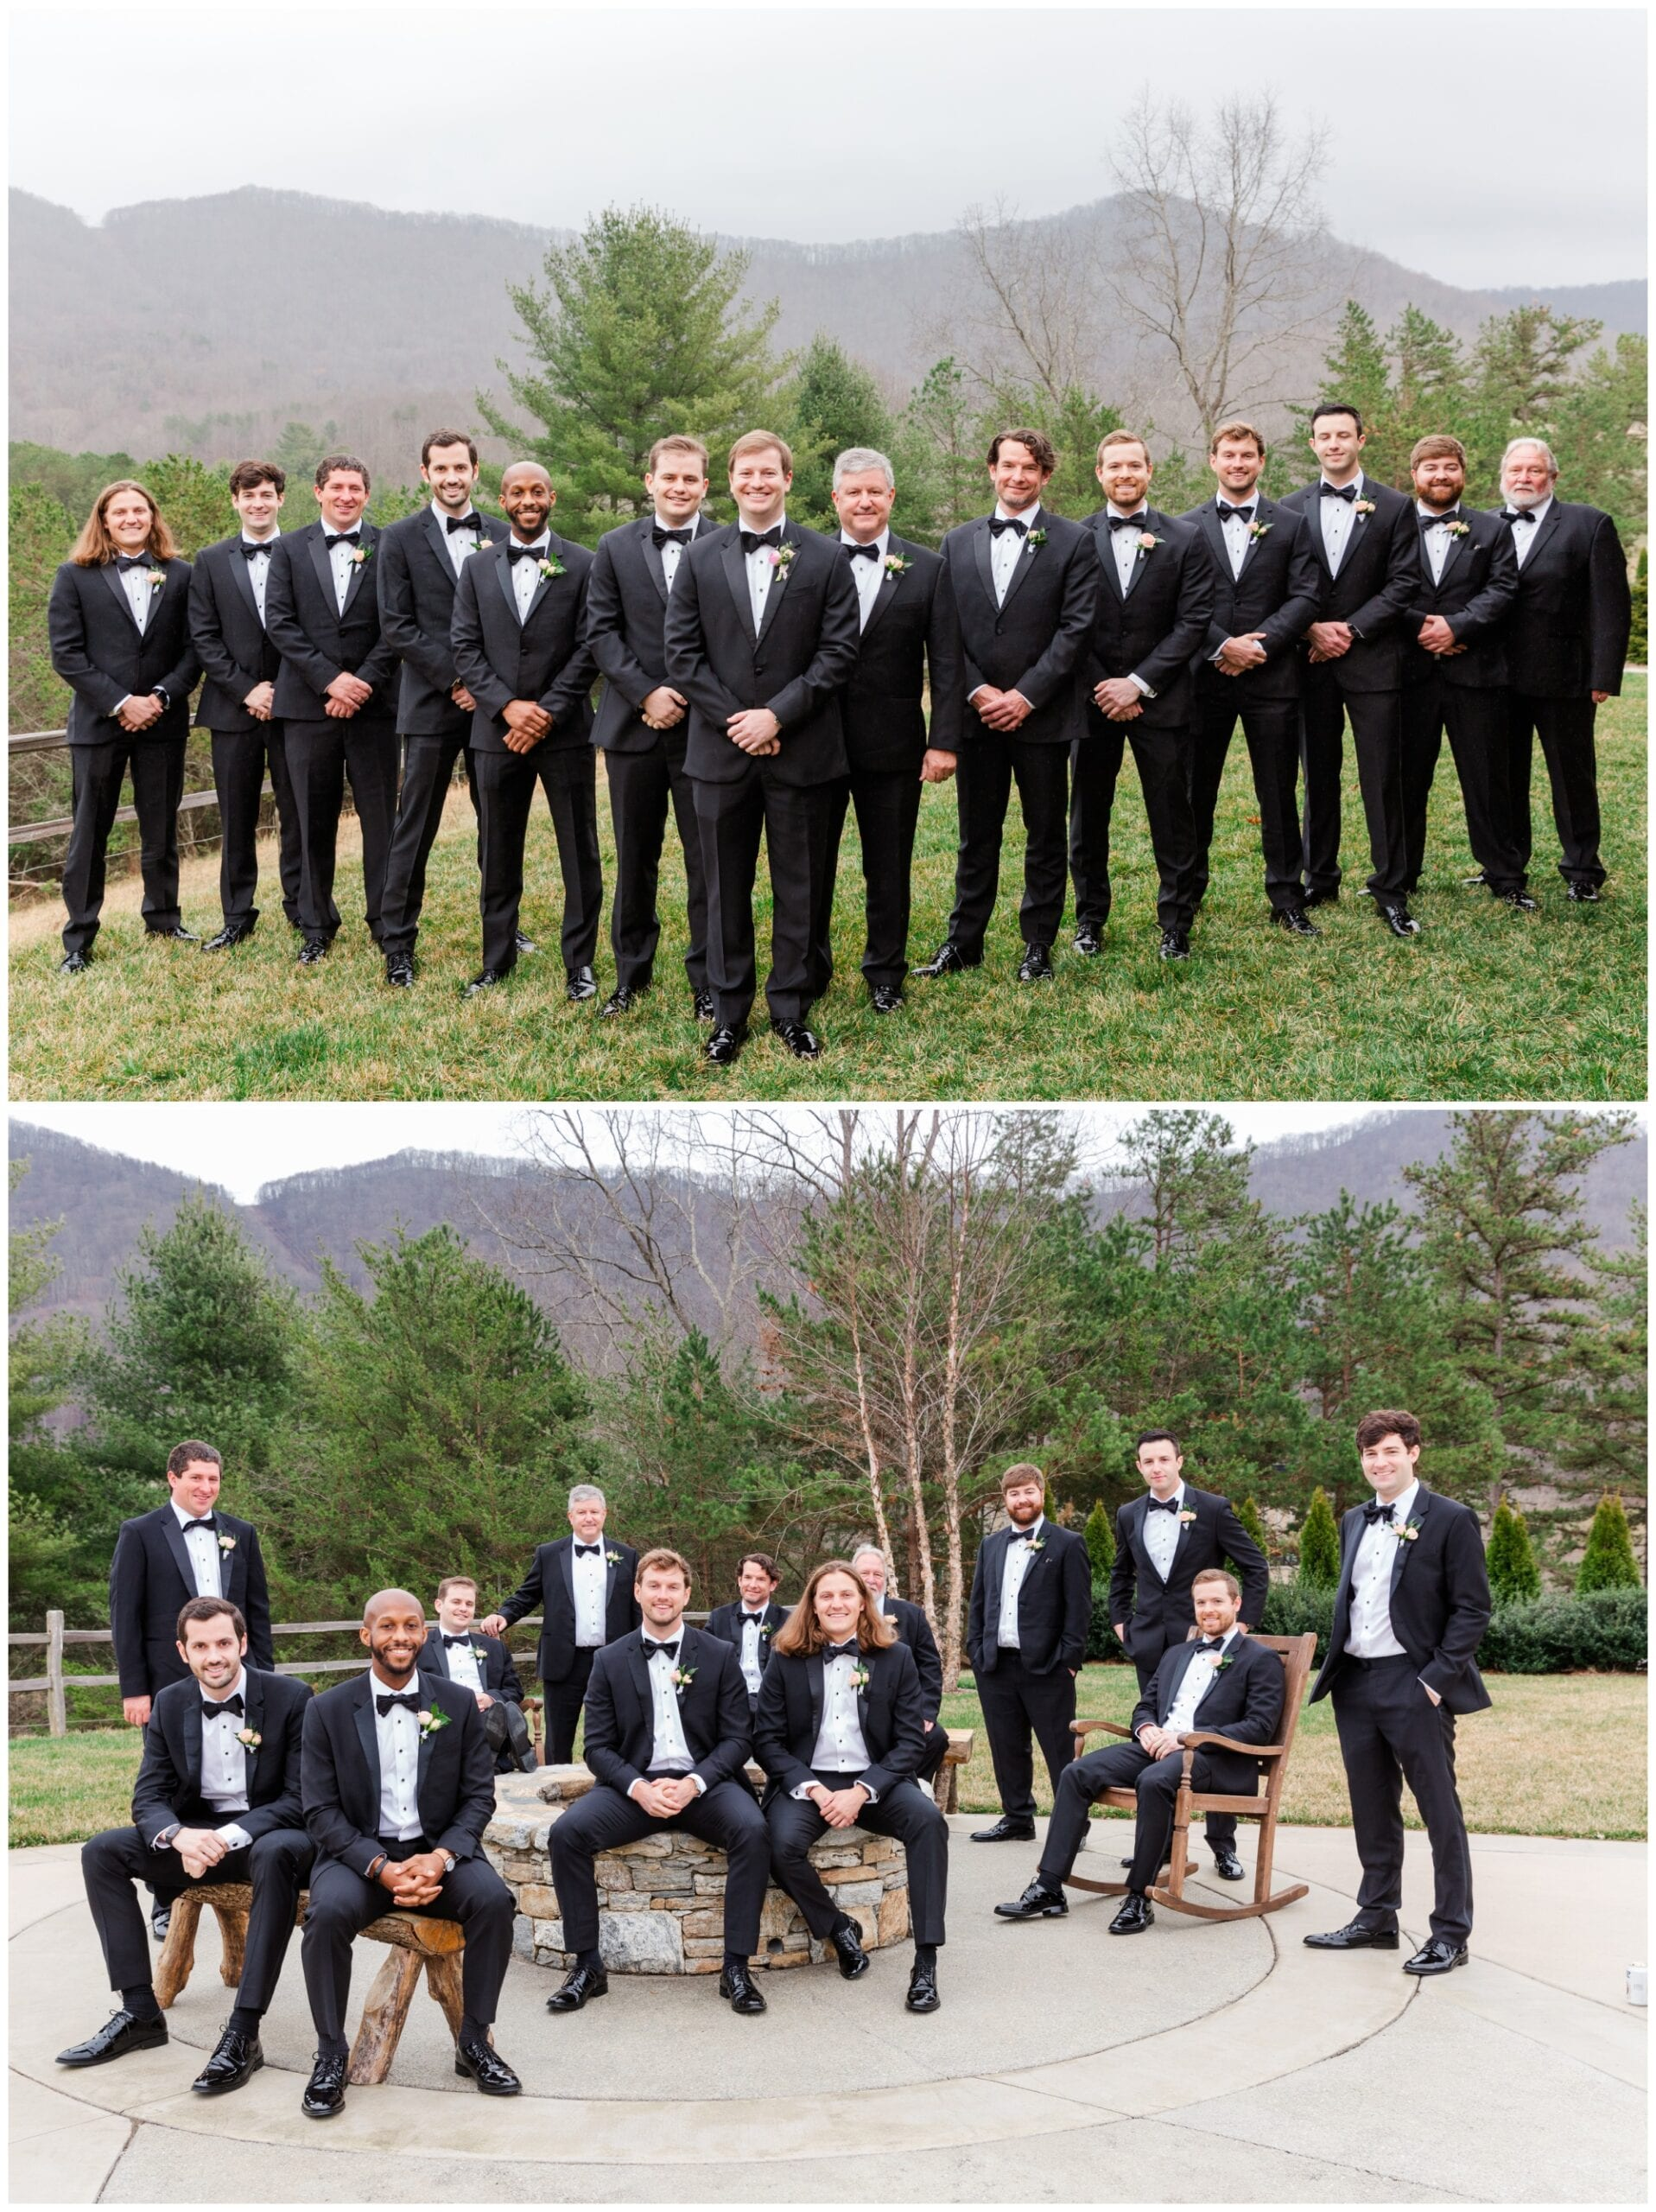 Groom & Groomsmen Photos with mountains in the background